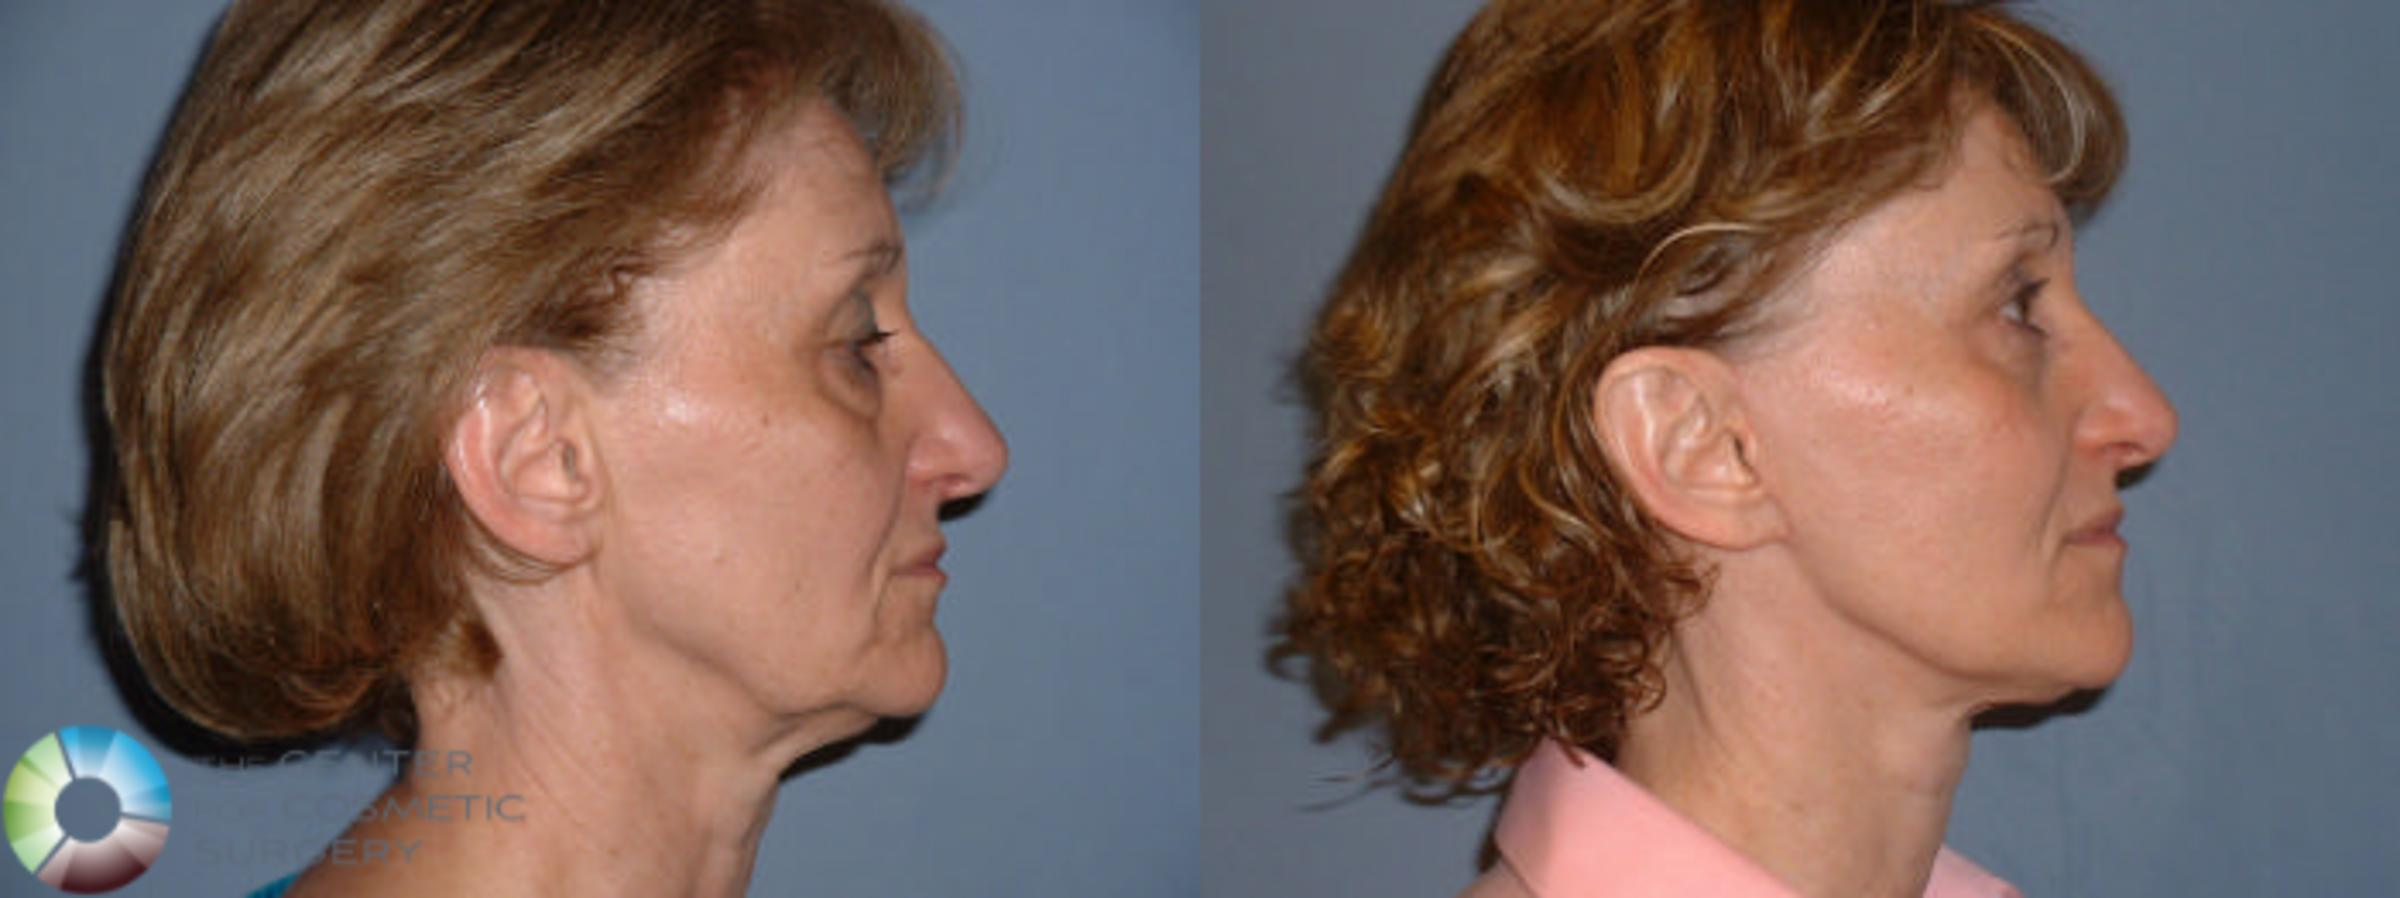 Mini Facelift Case 55 Before & After View #3 | Golden, CO | The Center for Cosmetic Surgery